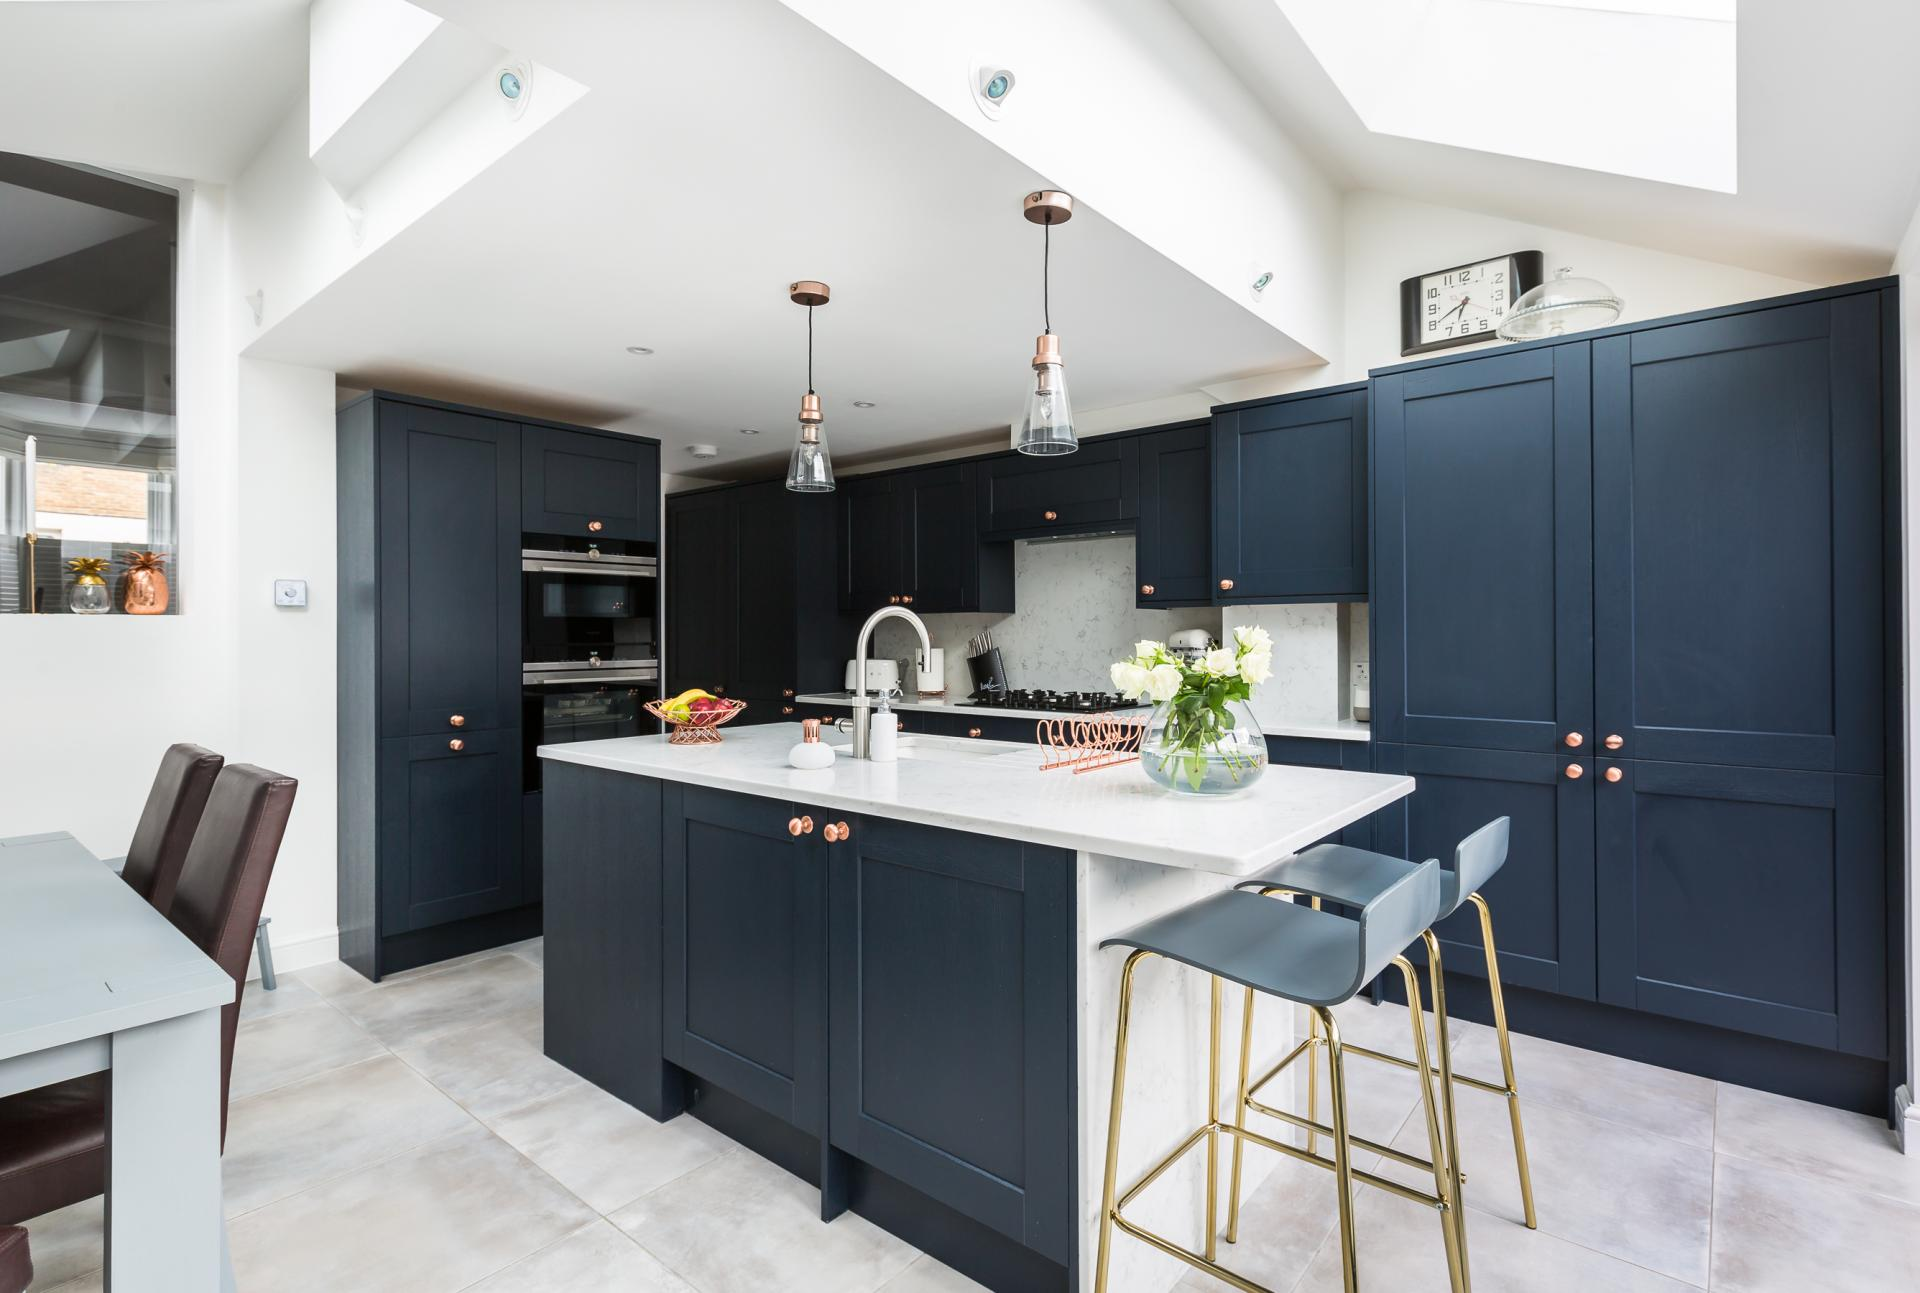 Interior Photography for a new kitchen extension in SE22